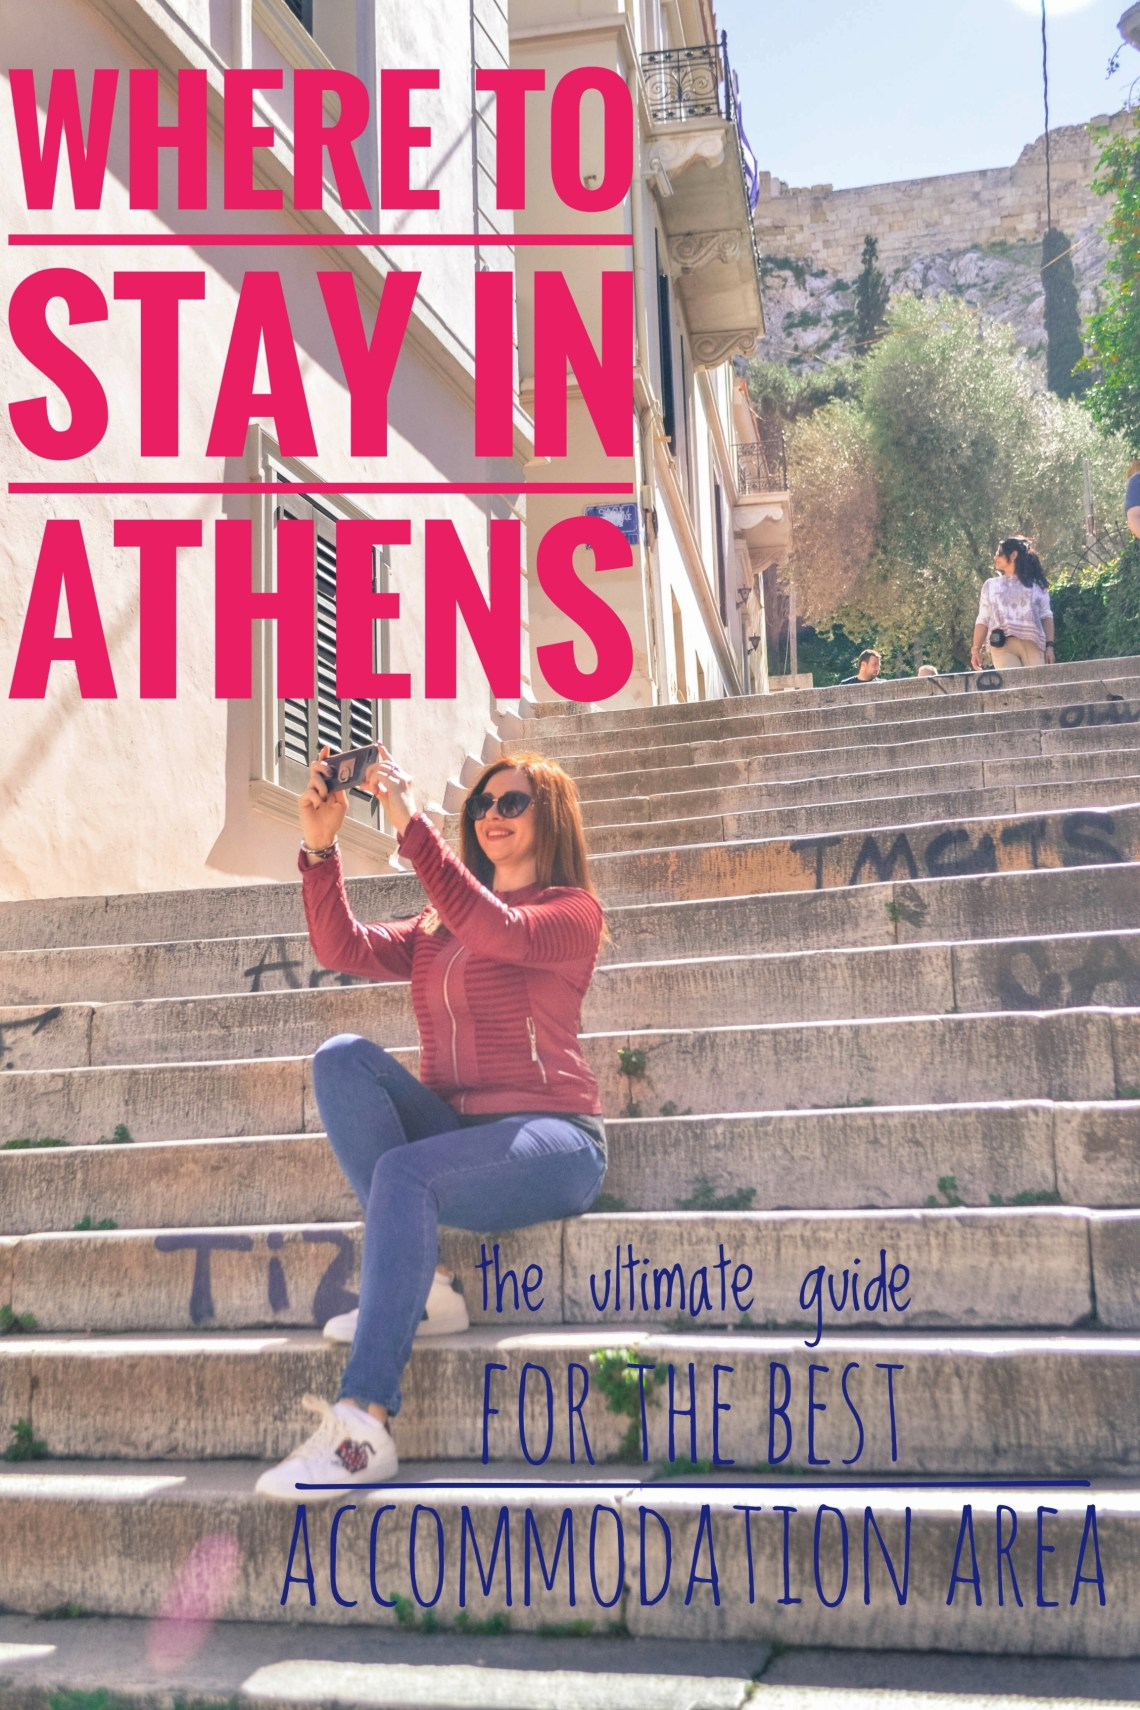 where - WHERE TO STAY IN ATHENS - THE ULTIMATE GUIDE FOR THE BEST ACCOMMODATION AREA